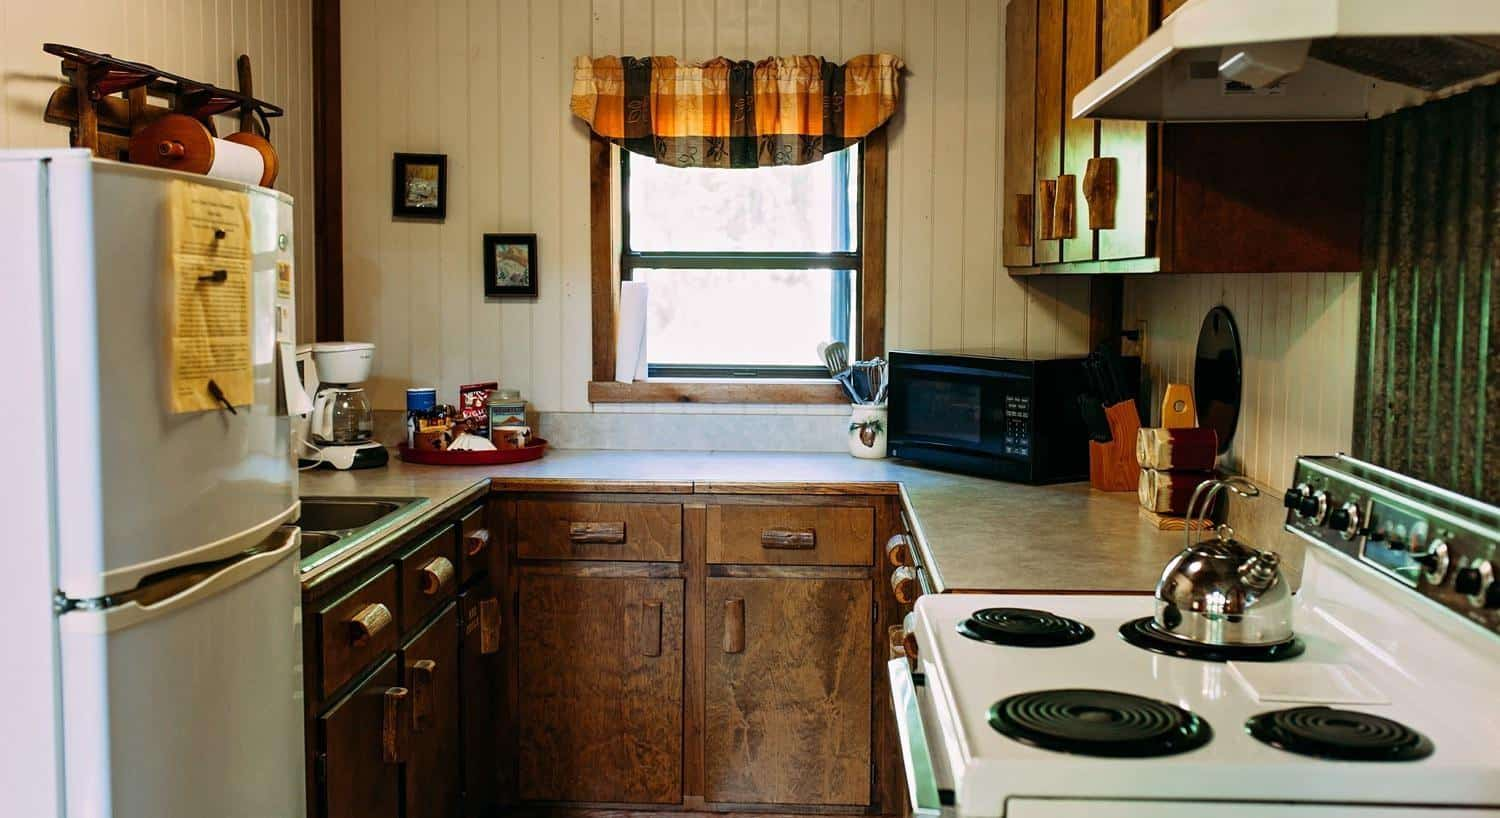 A kitchen in one of the cabins with refrigerator, range, countertop and window